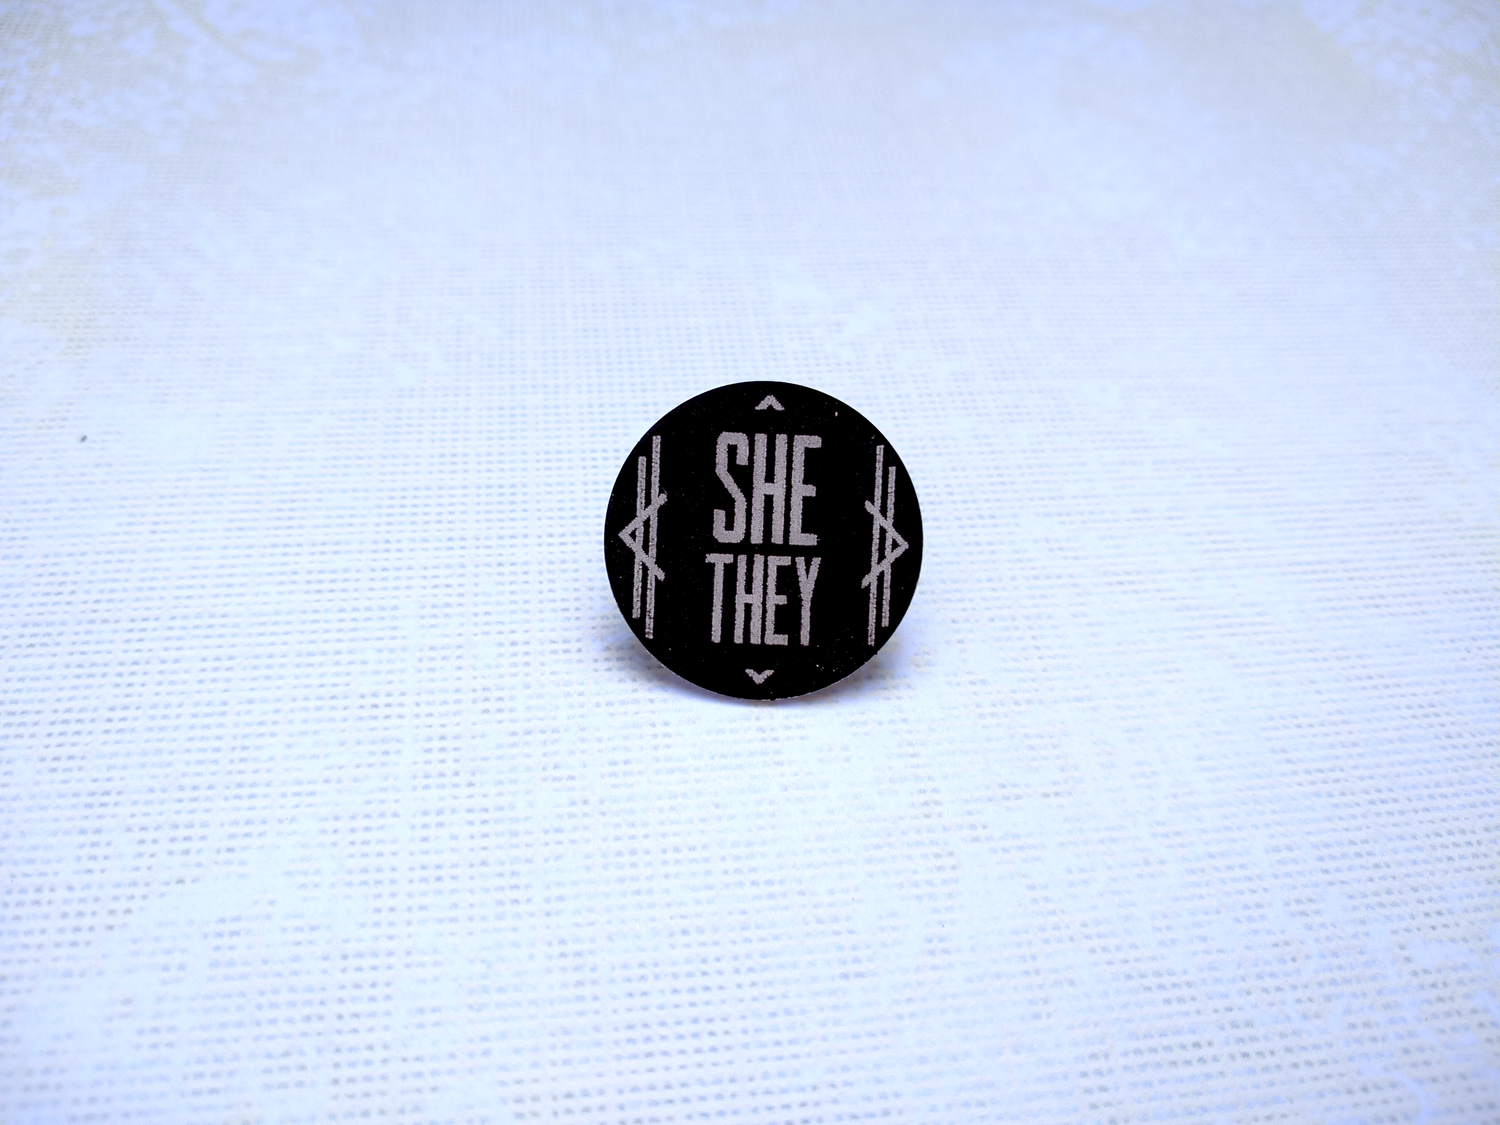 She/They Art Deco Columns Pronoun Pin (Pay What You Can)